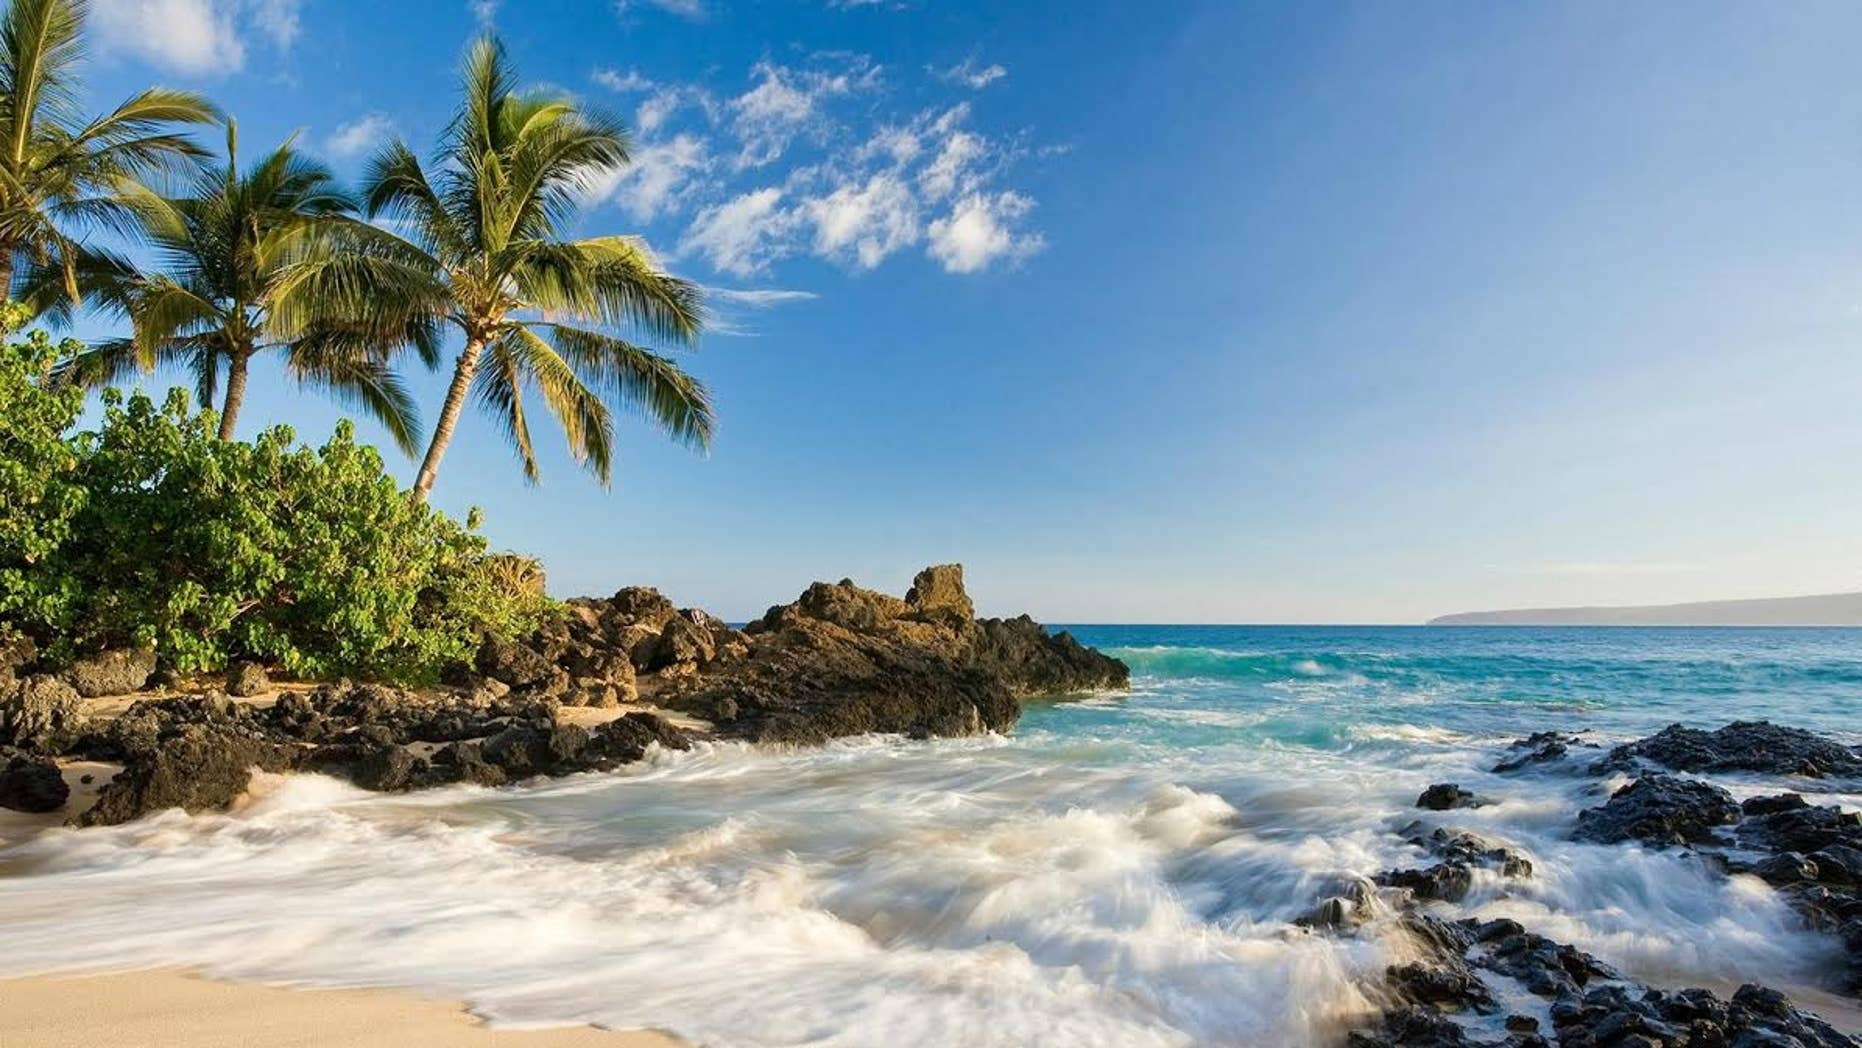 Hawaii's Maui island has been voted the top island in the U.S.